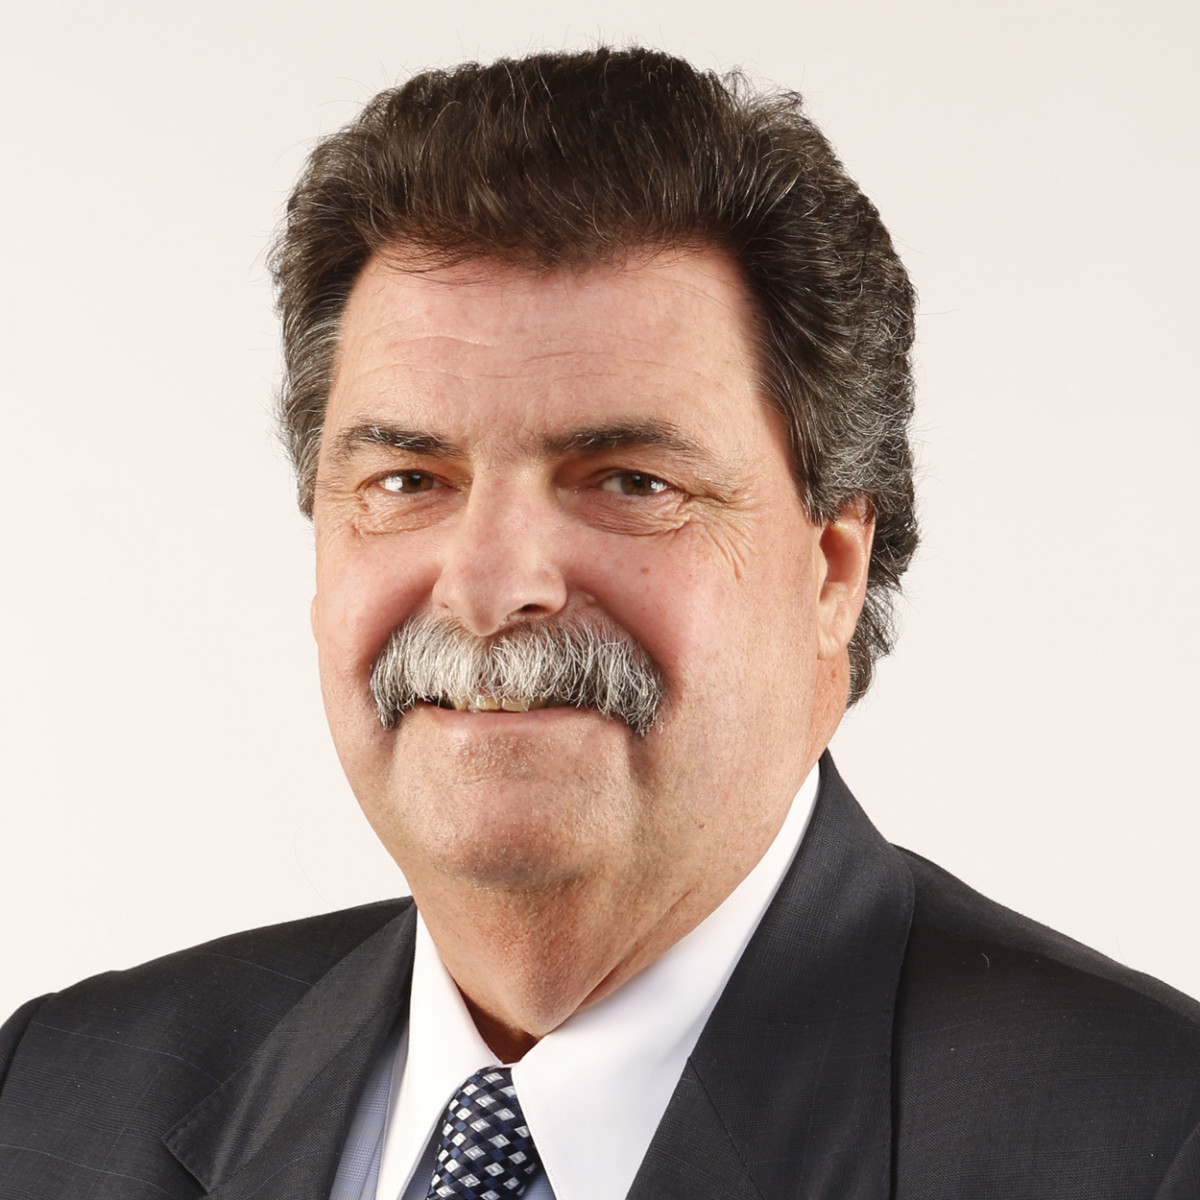 AMA Pro Racing announced today that it welcomes longtime NASCAR veteran Mike Helton to its Board of Managers